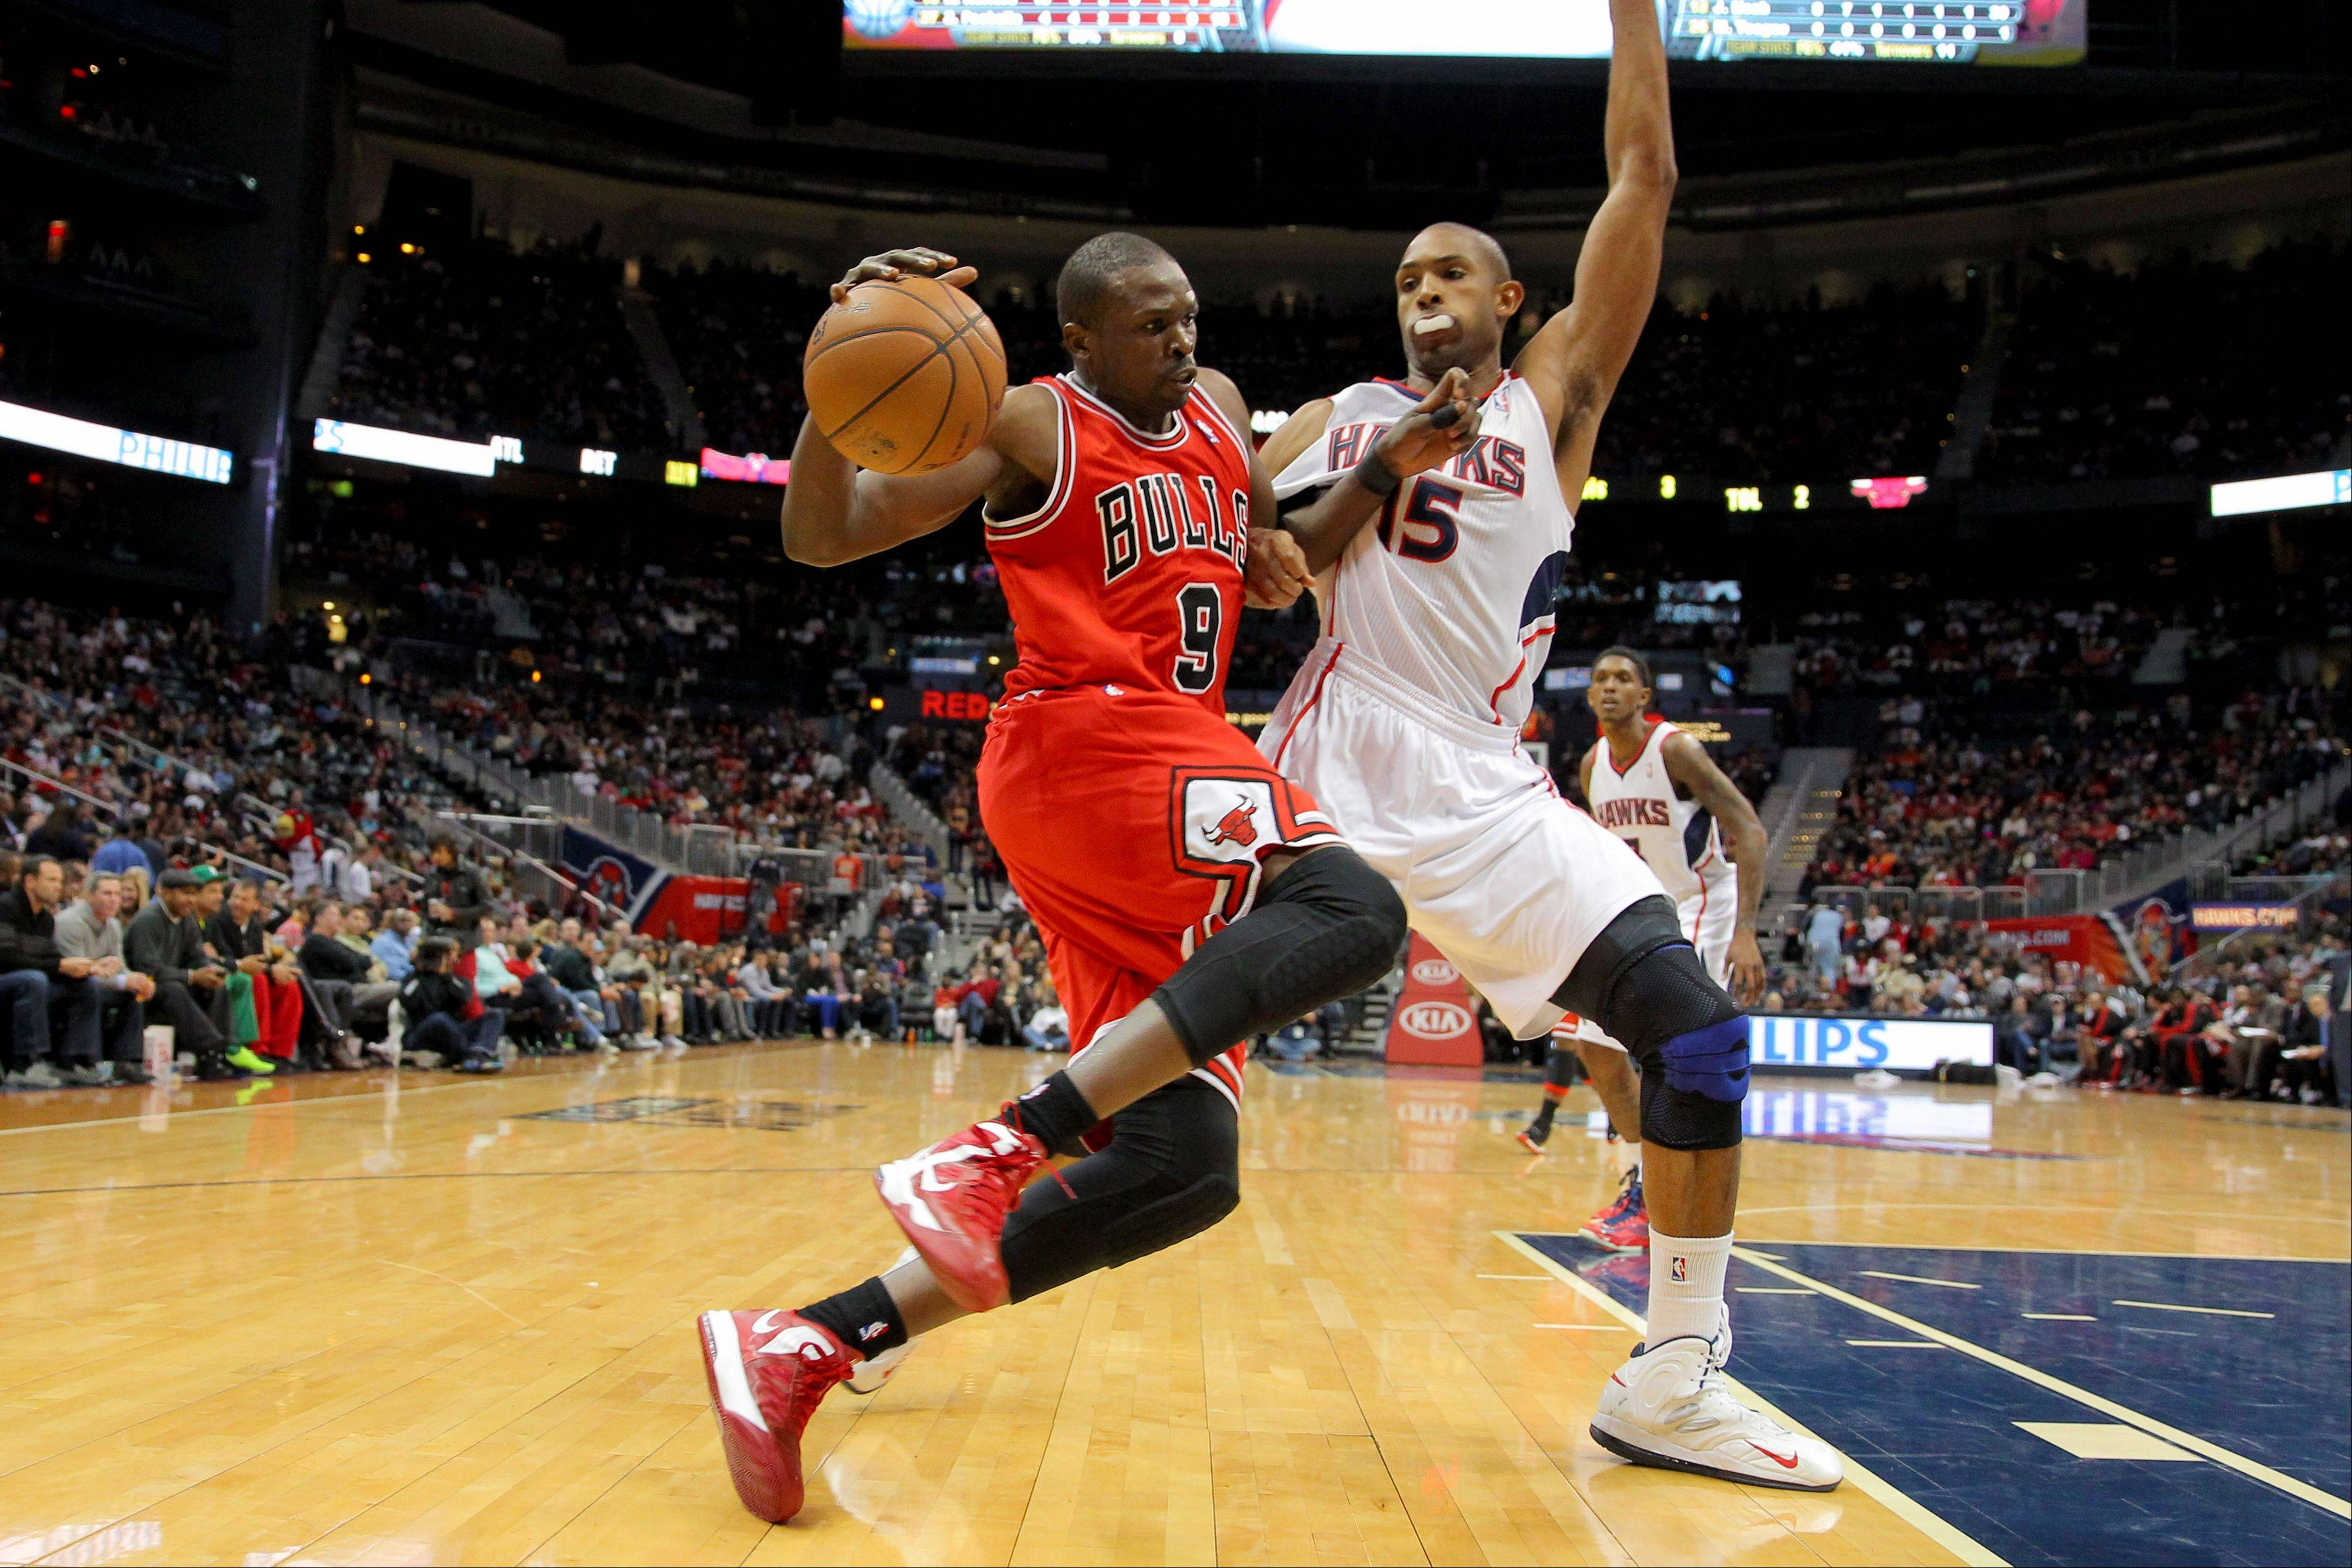 Chicago Bulls forward Luol Deng (9) drives to the basket against Atlanta Hawks center Al Horford (15) in the second half Saturday in Atlanta. The Hawks won 92-75.